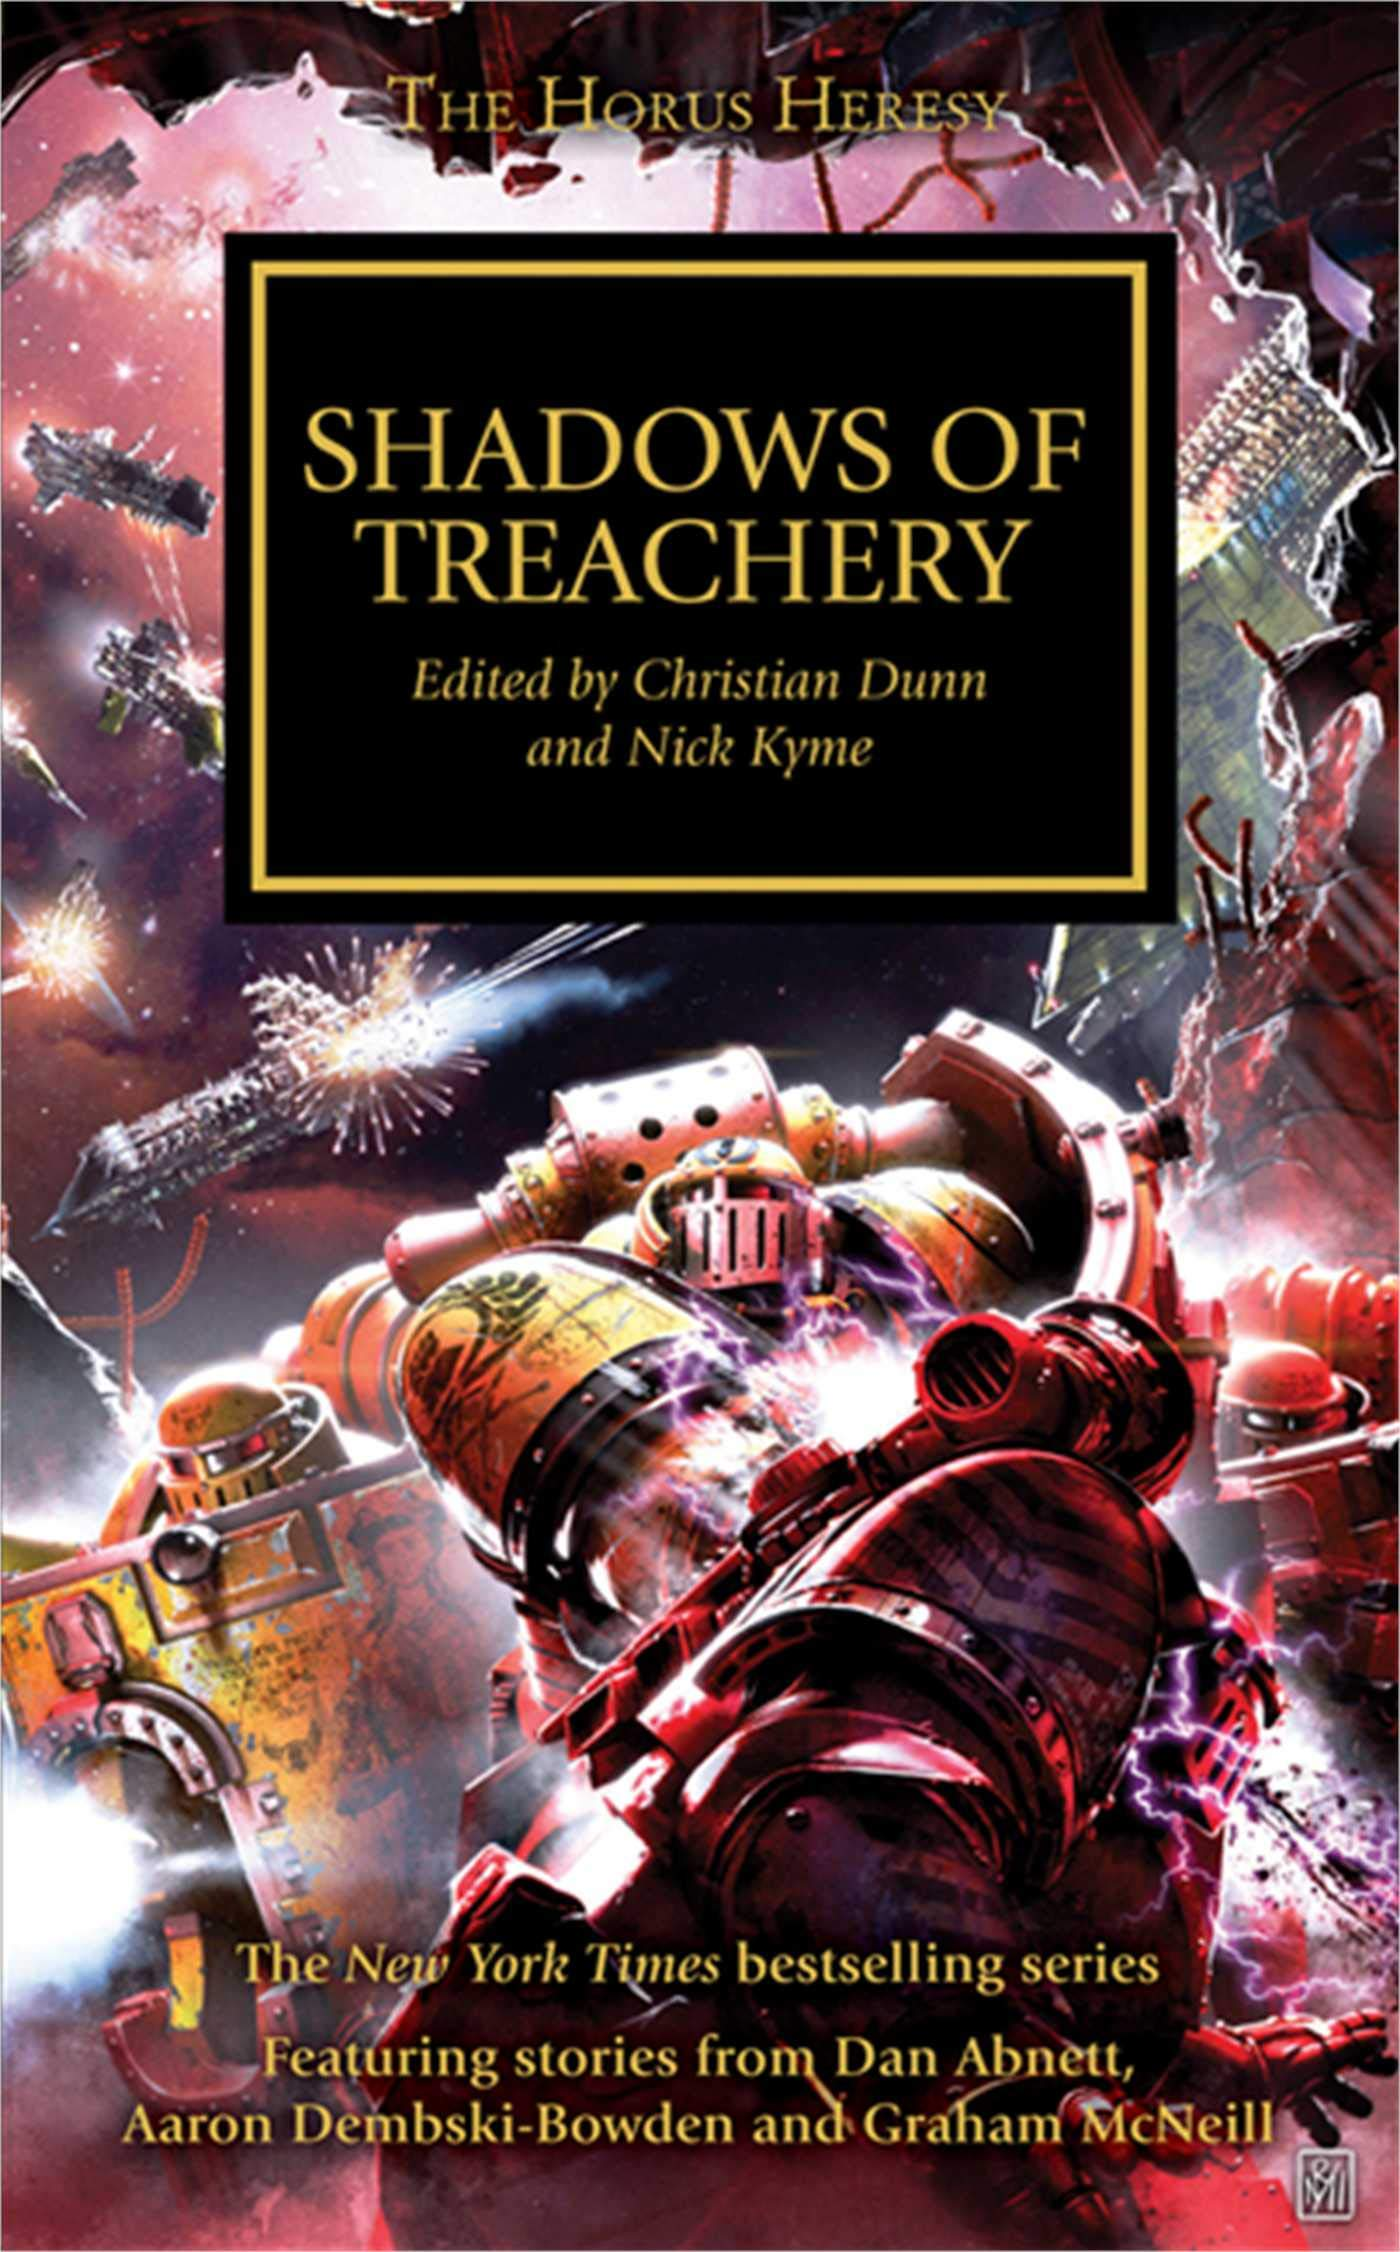 Horus Heresy in order